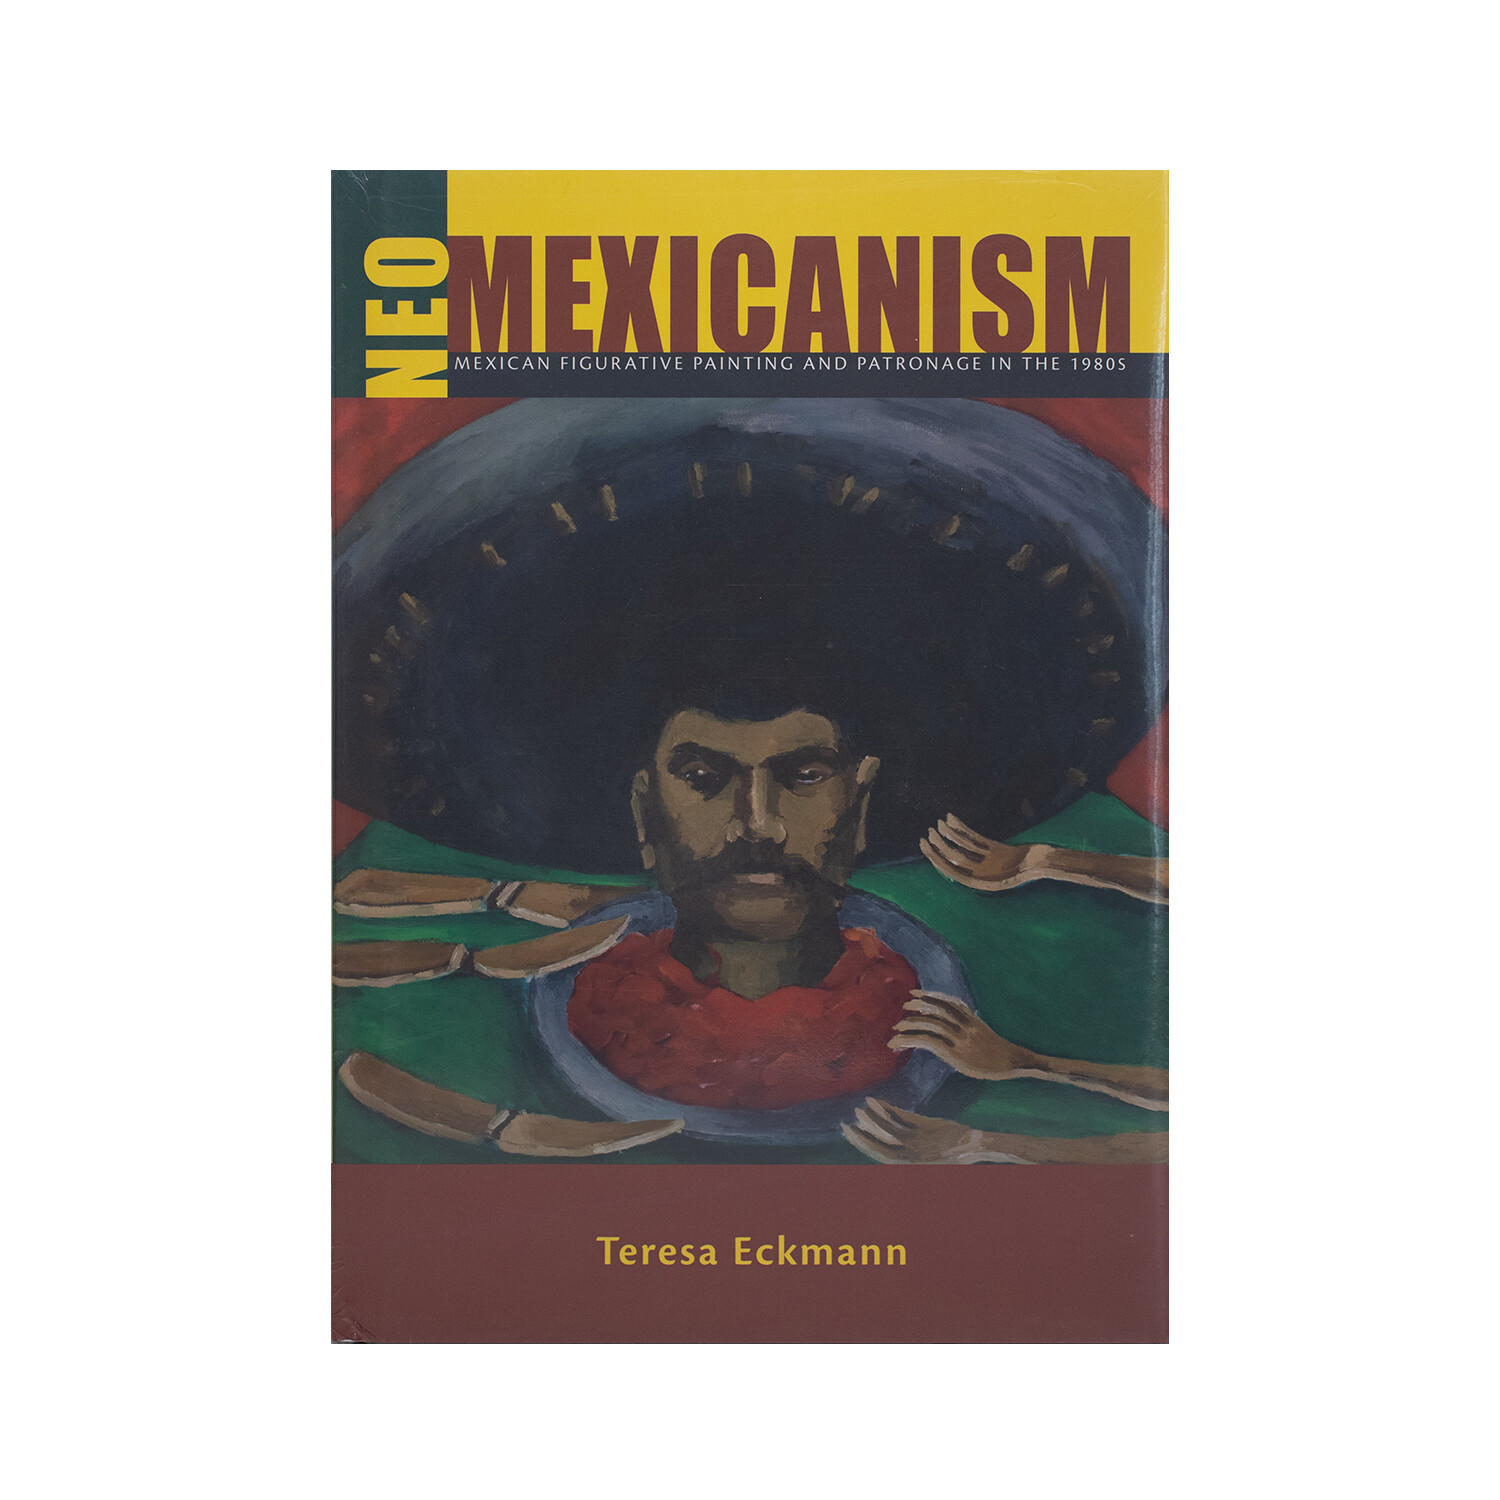 Neo-Mexicanism: Mexican Figurative Painting and Patronage in the 1980's